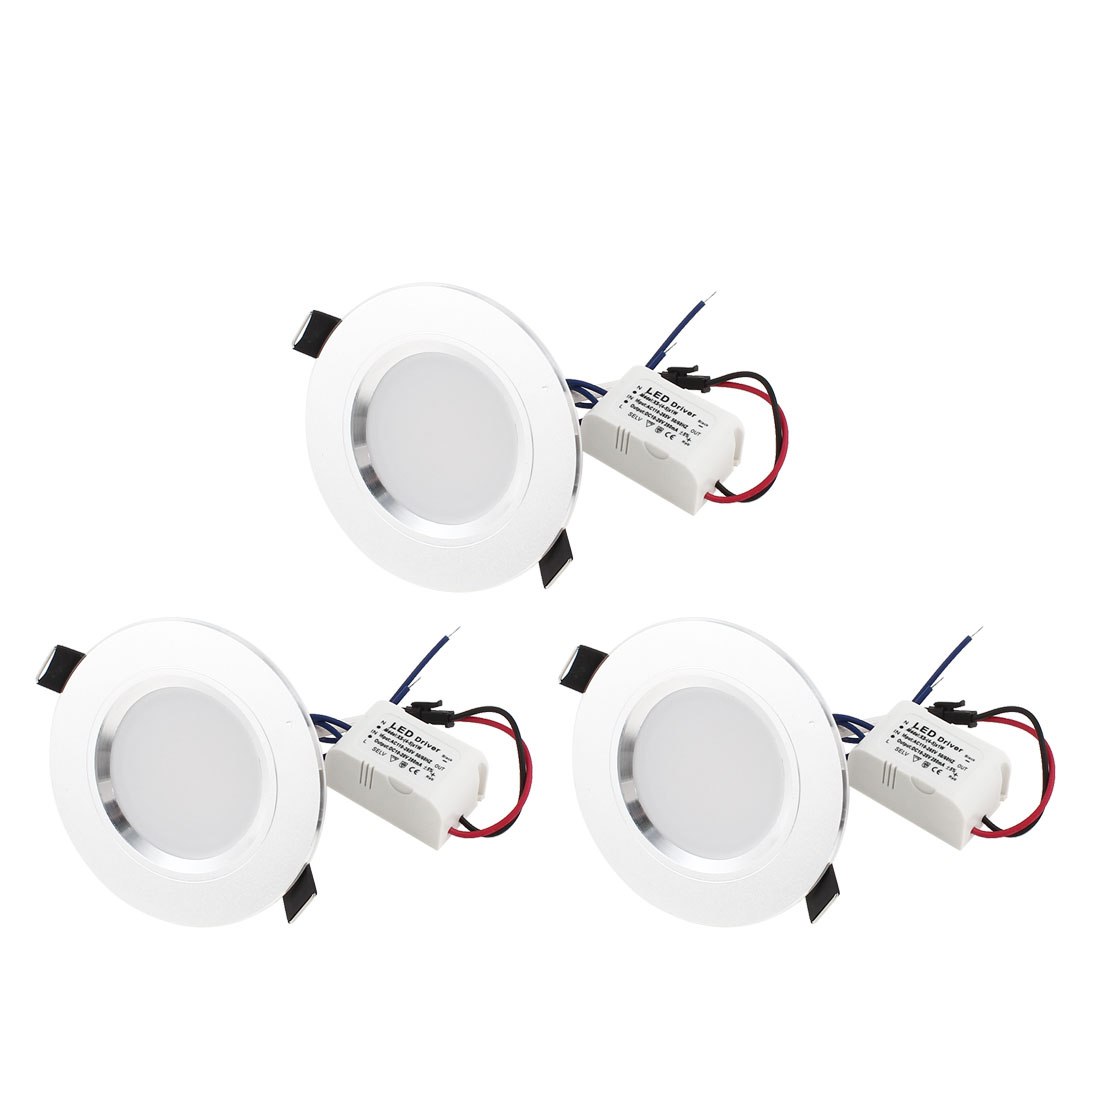 AC 110-265V 5W High Power Warm White Light Ceiling Downlight Lamp 3 Pcs